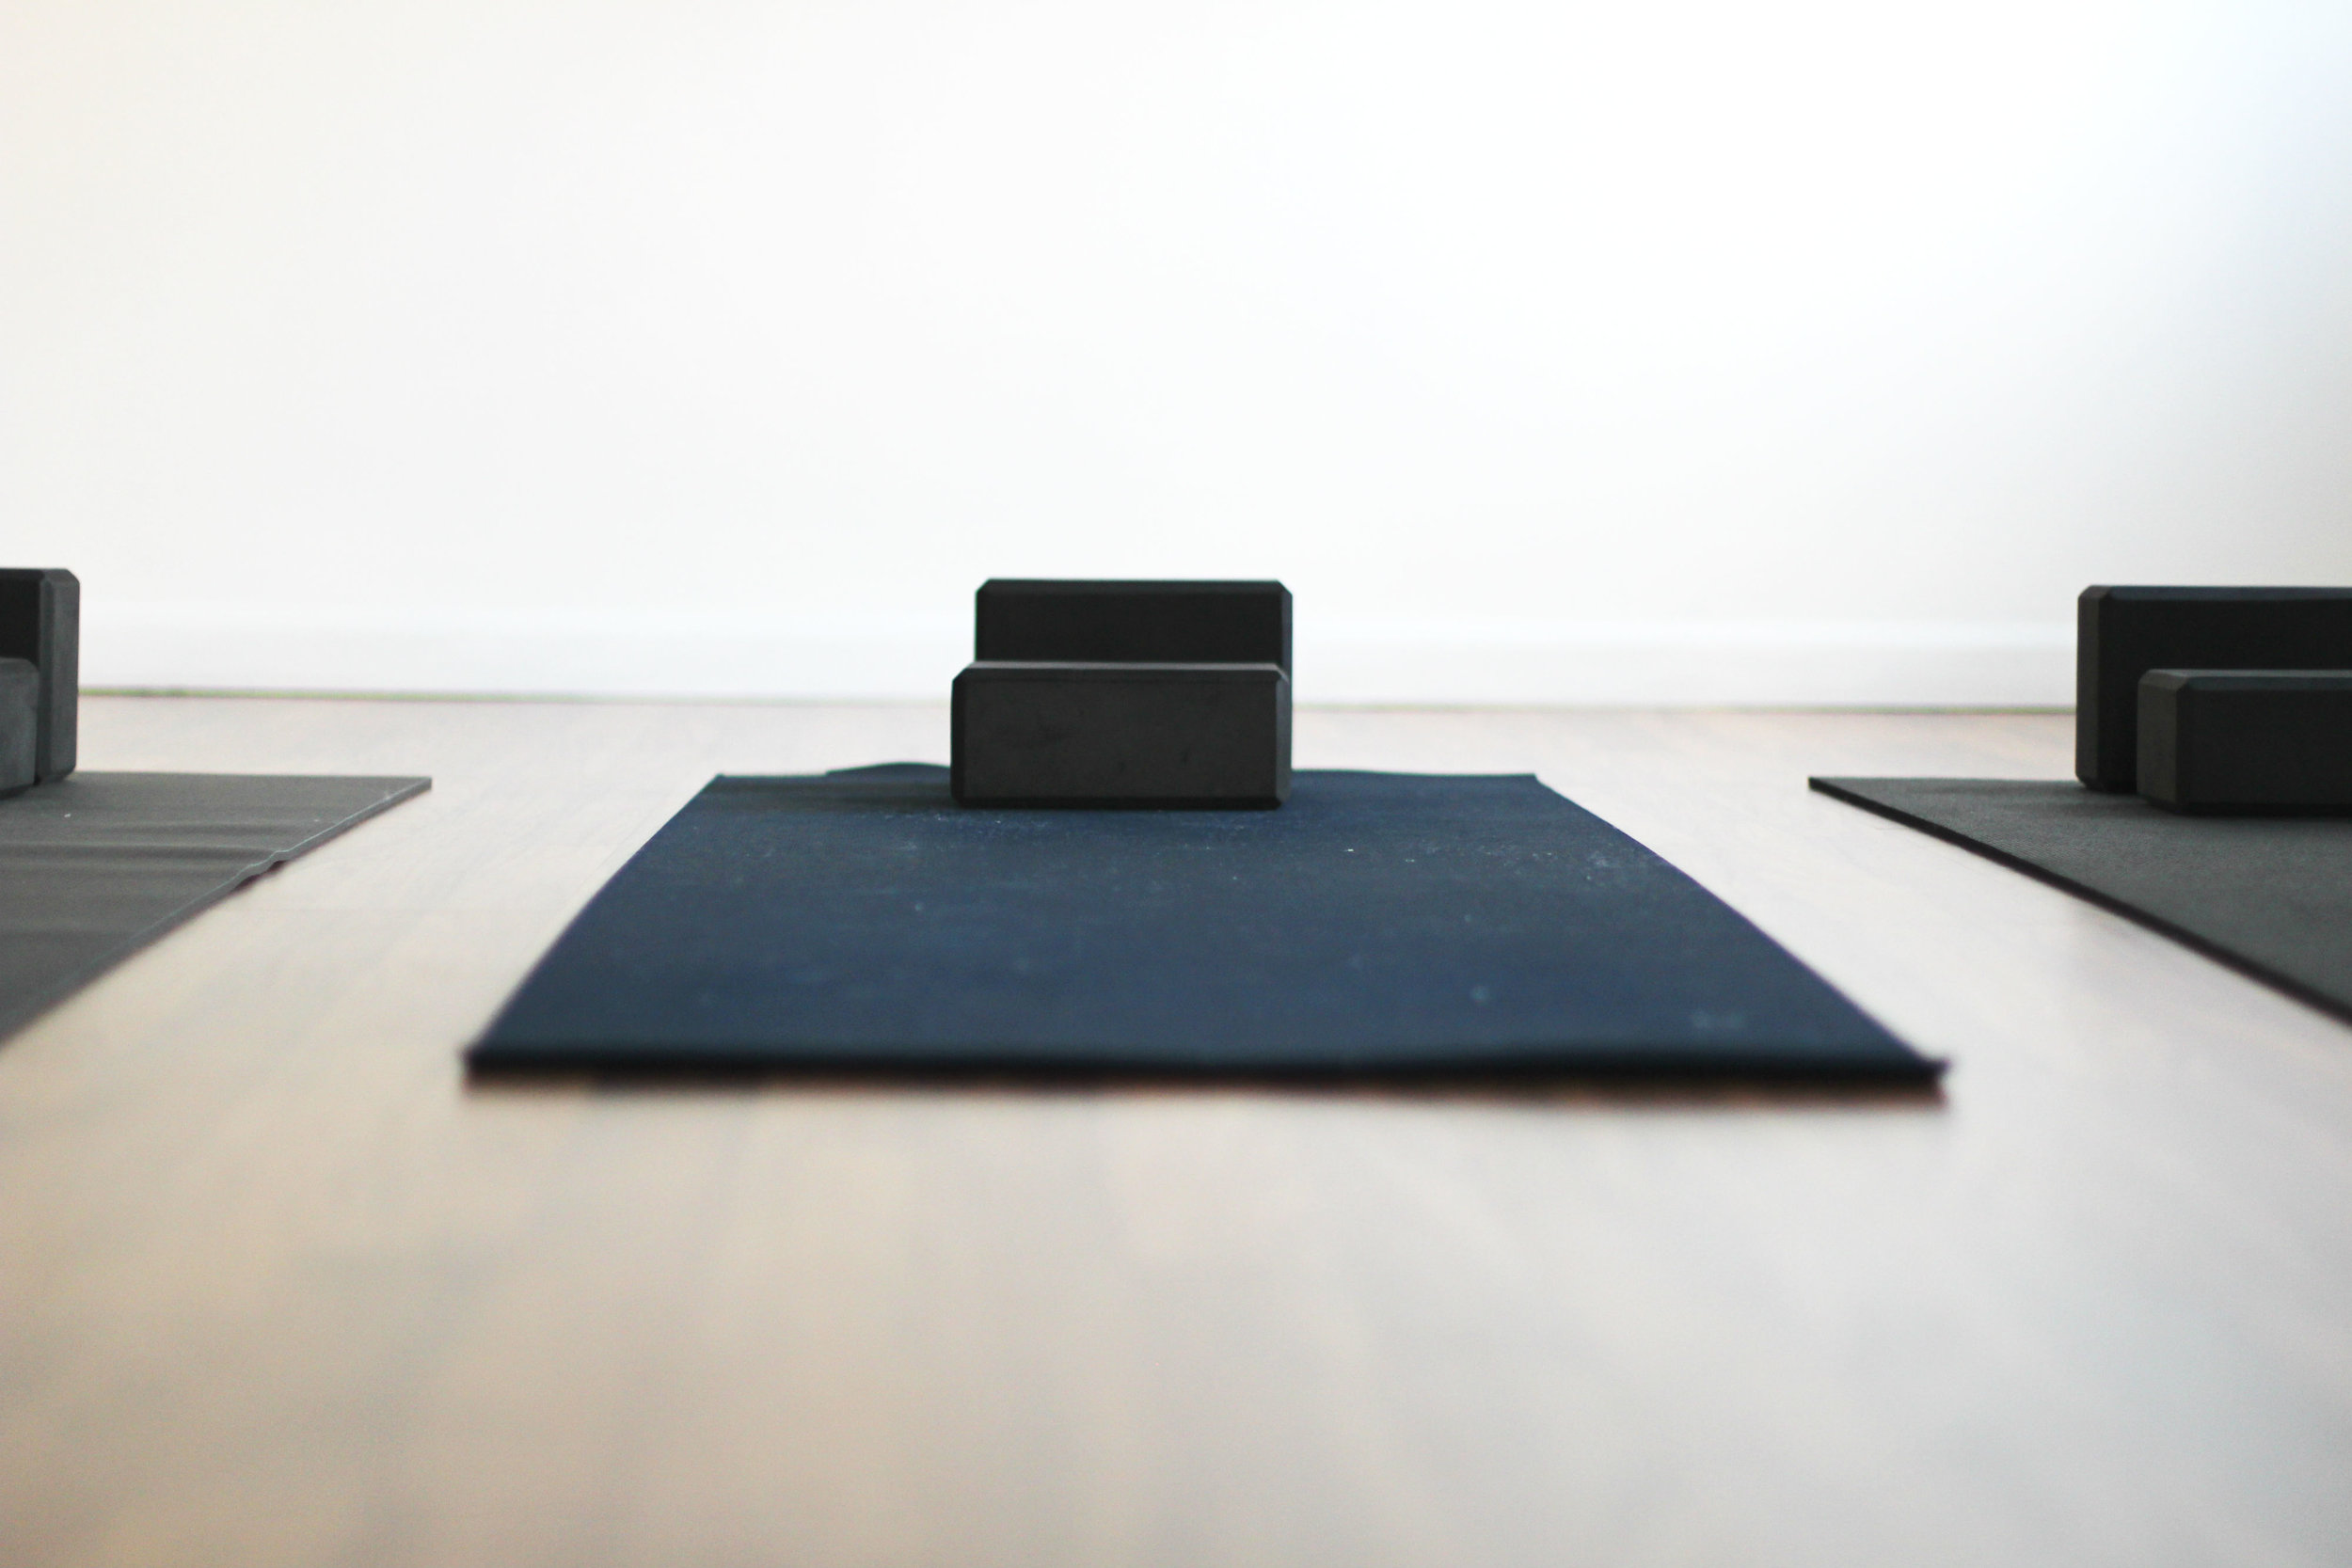 Mats and Towels - We suggest bringing your own mat to class. If you don't have one or forgot it at home - a limited number mats are available.You also may want to bring a hand towel with you to class. Sweat happens!